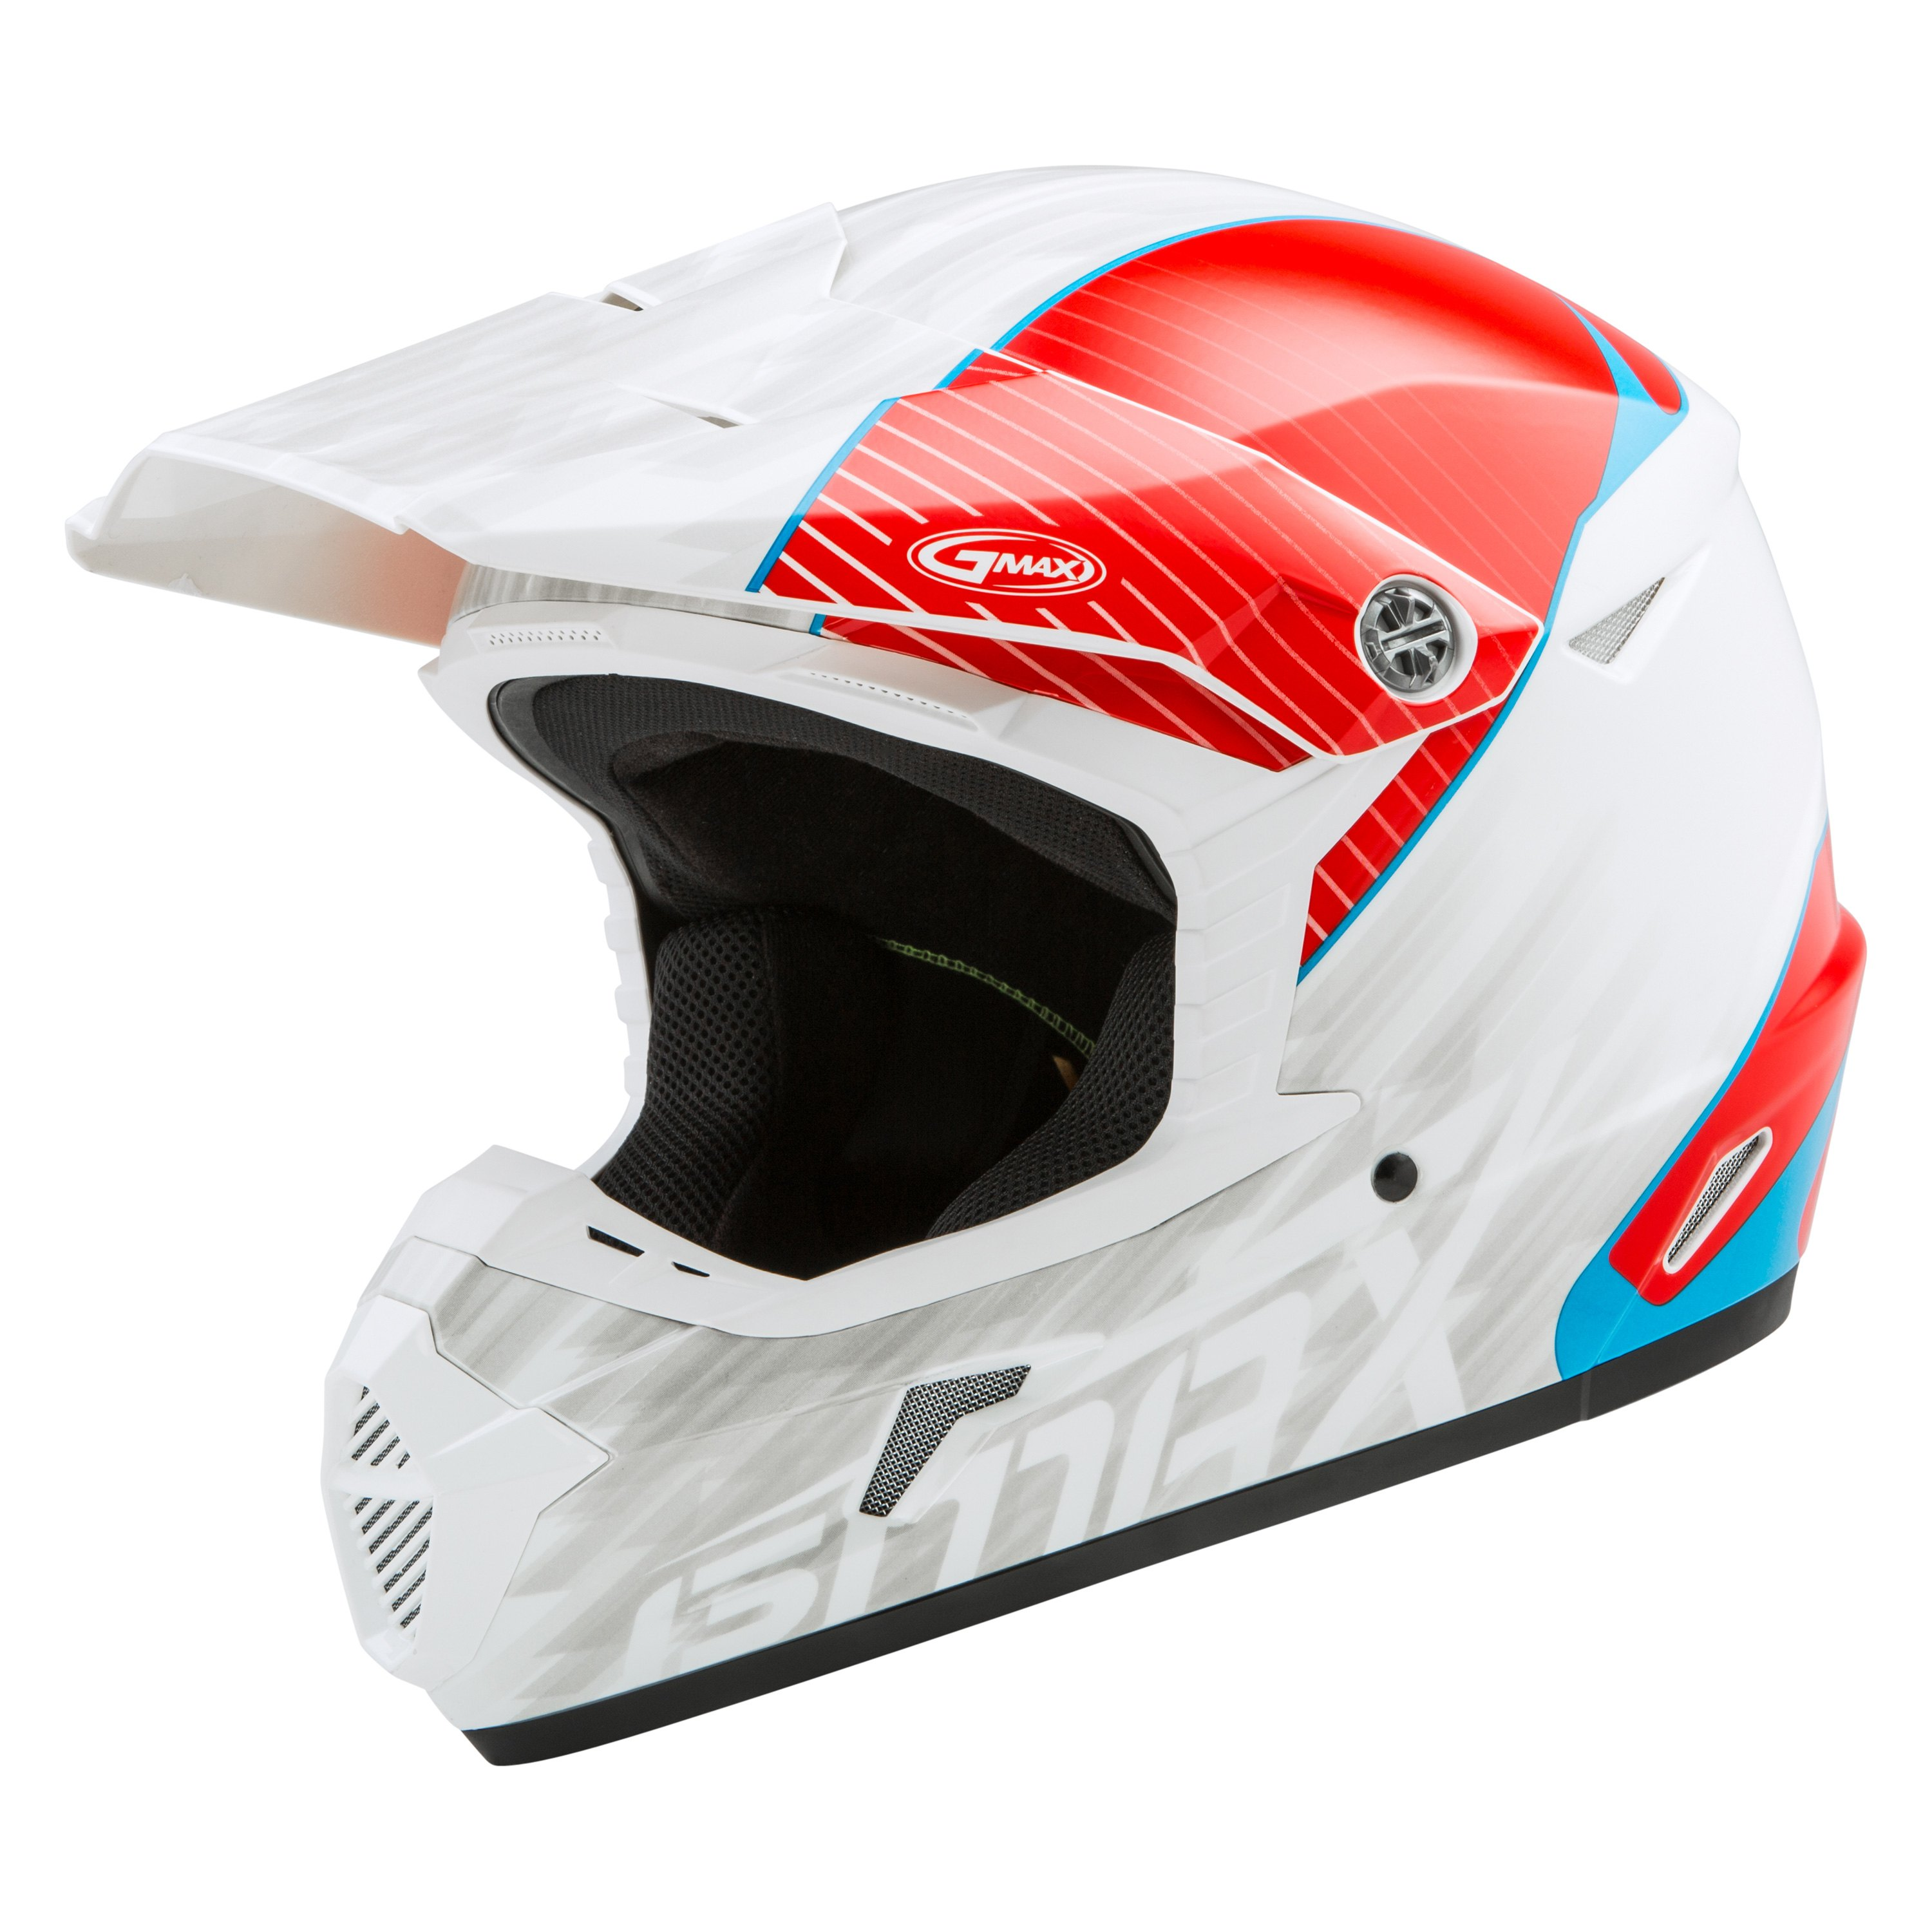 Gmax 174 G3463012 Mx 46y Offroad Colfax Large White Red